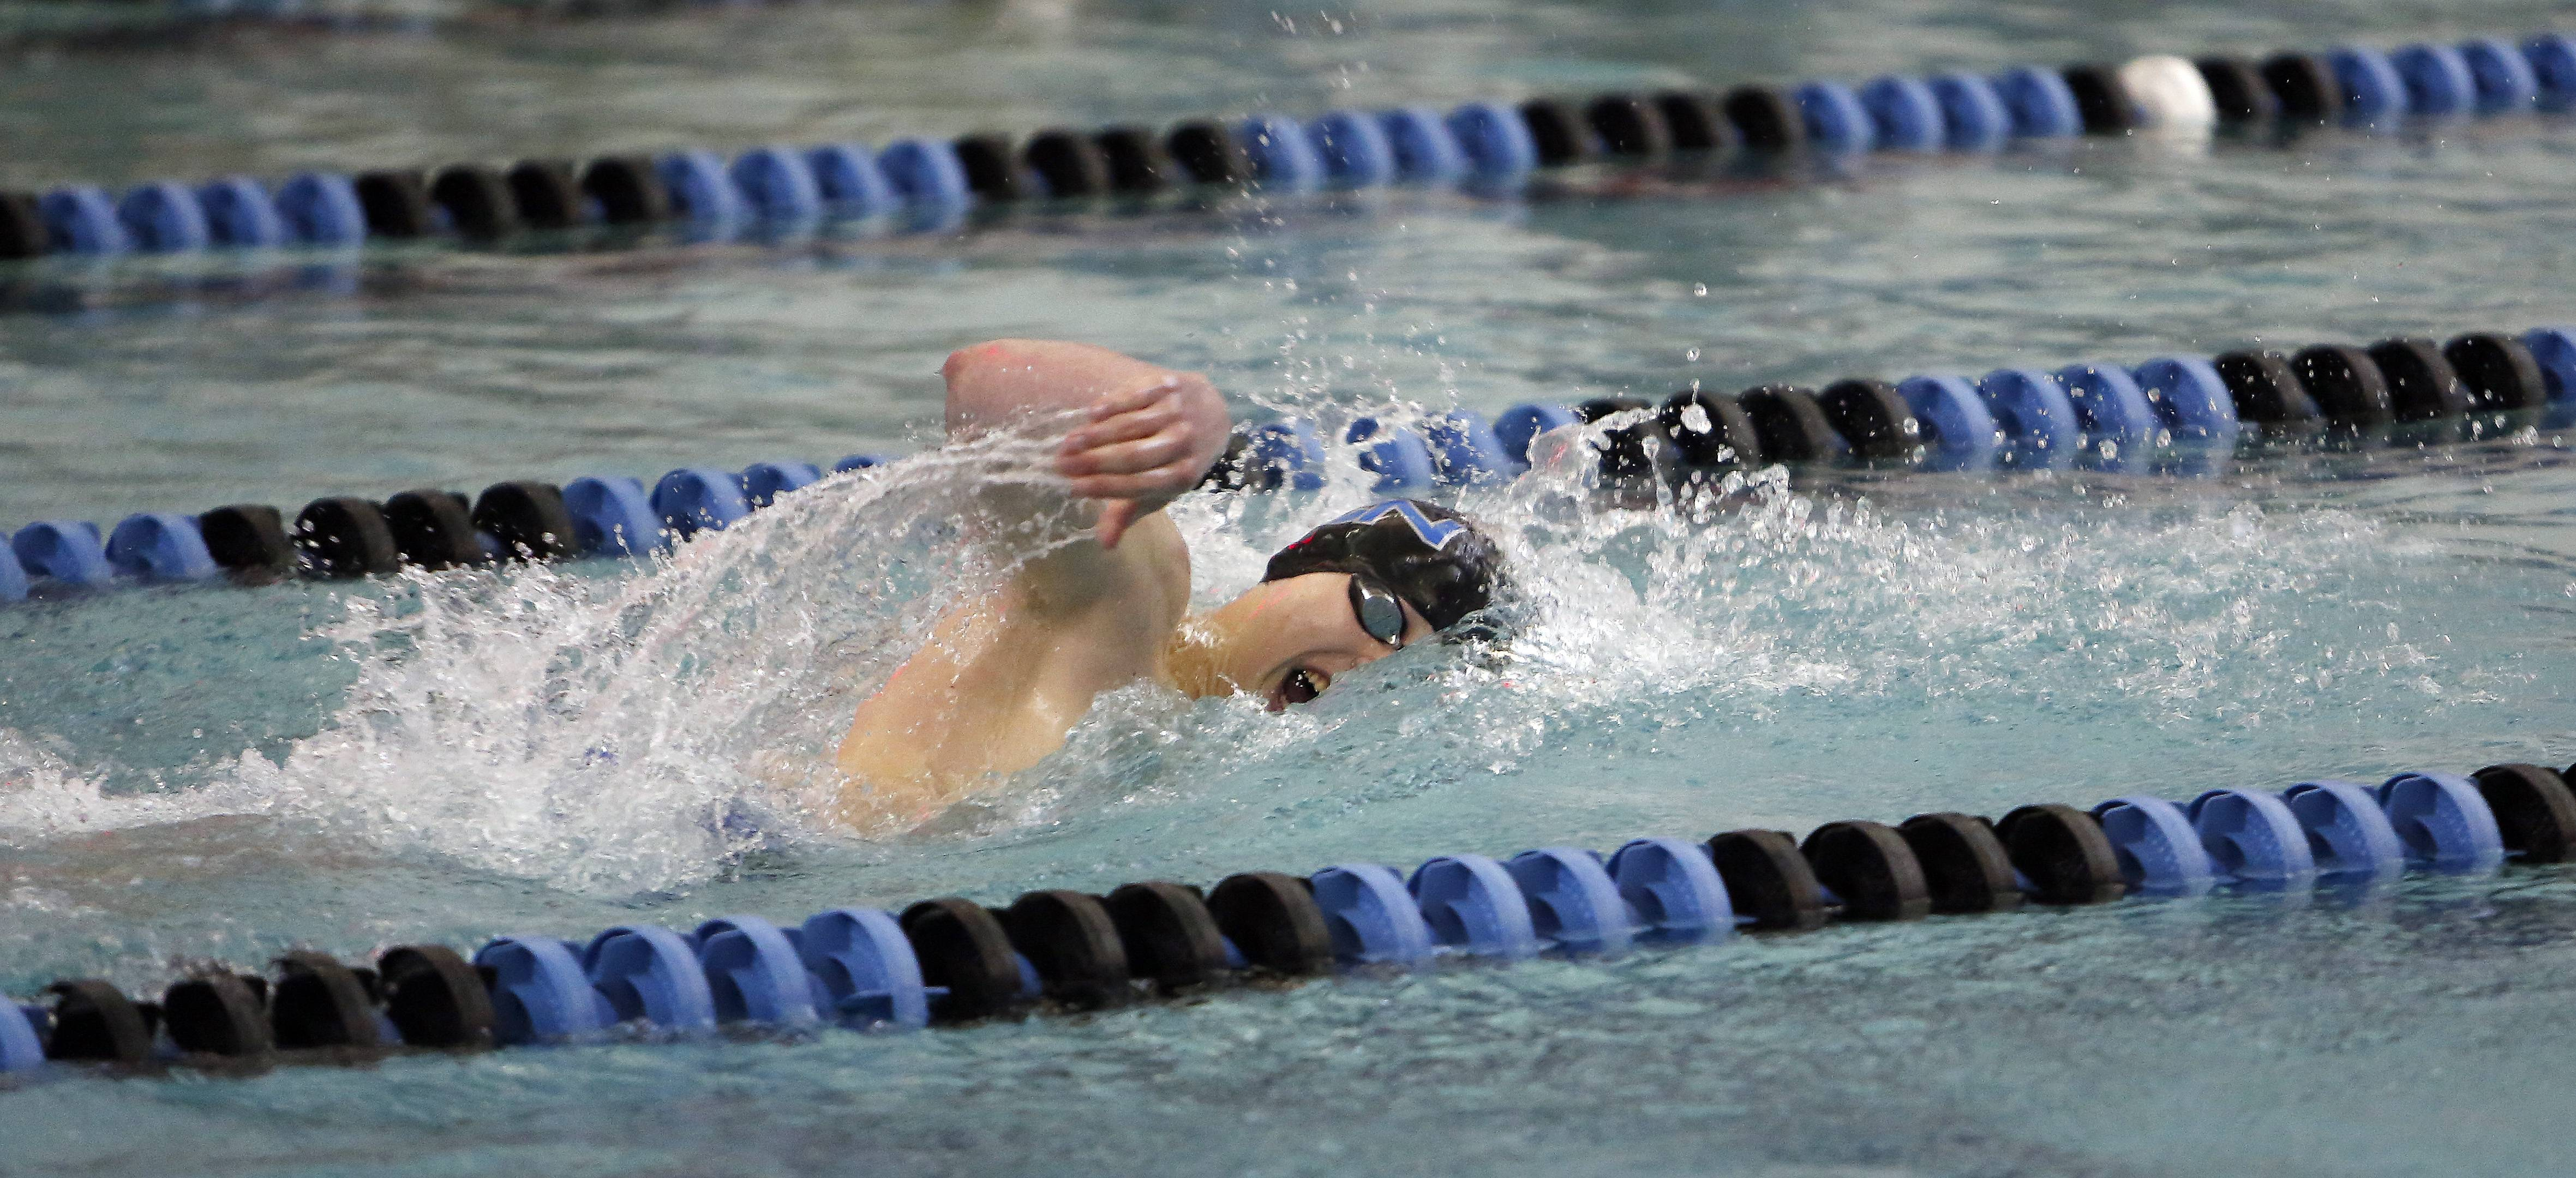 St. Charles North's Joe Myhre competes in the 200 yard freestyle during the 2014 Boys Swimming and Diving IHSA Sectional Championships Saturday at St. Charles North High School in St. Charles.